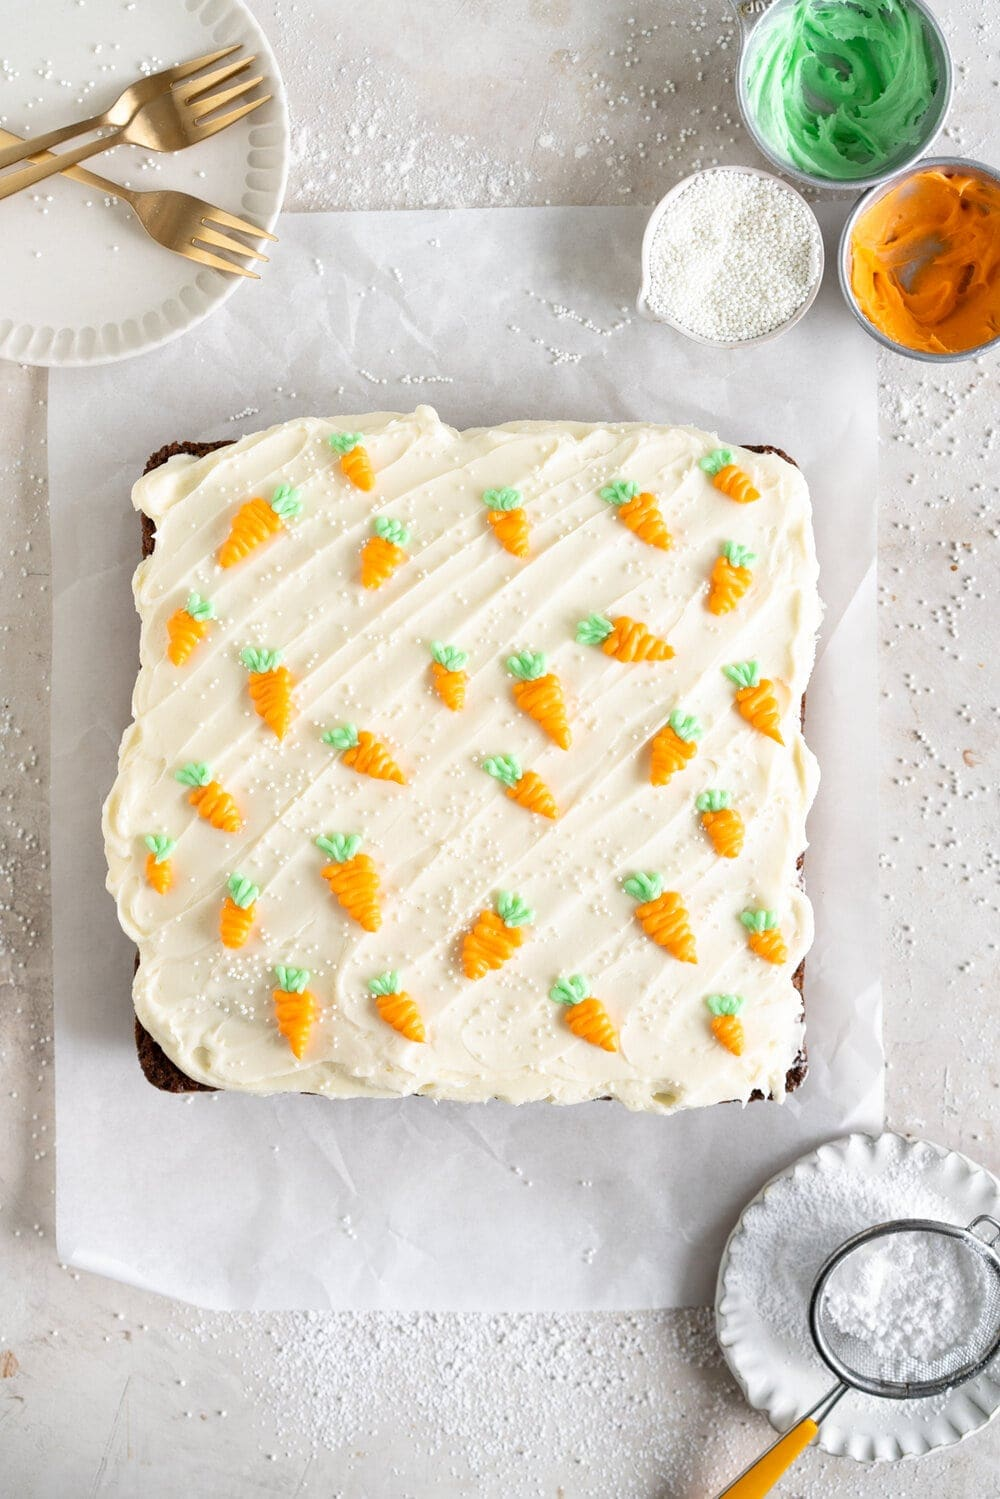 Carrot Snack Cake with Cream Cheese Frosting. This easy, moist, carrot sheet cake is the most perfect easter cake. It is made with pantry staples and finished with a simple cream cheese frosting and some super cute piped frosting carrots. This cake is great for a simple easter dessert, or for entertaining, as sheet cakes are super easy to transport.